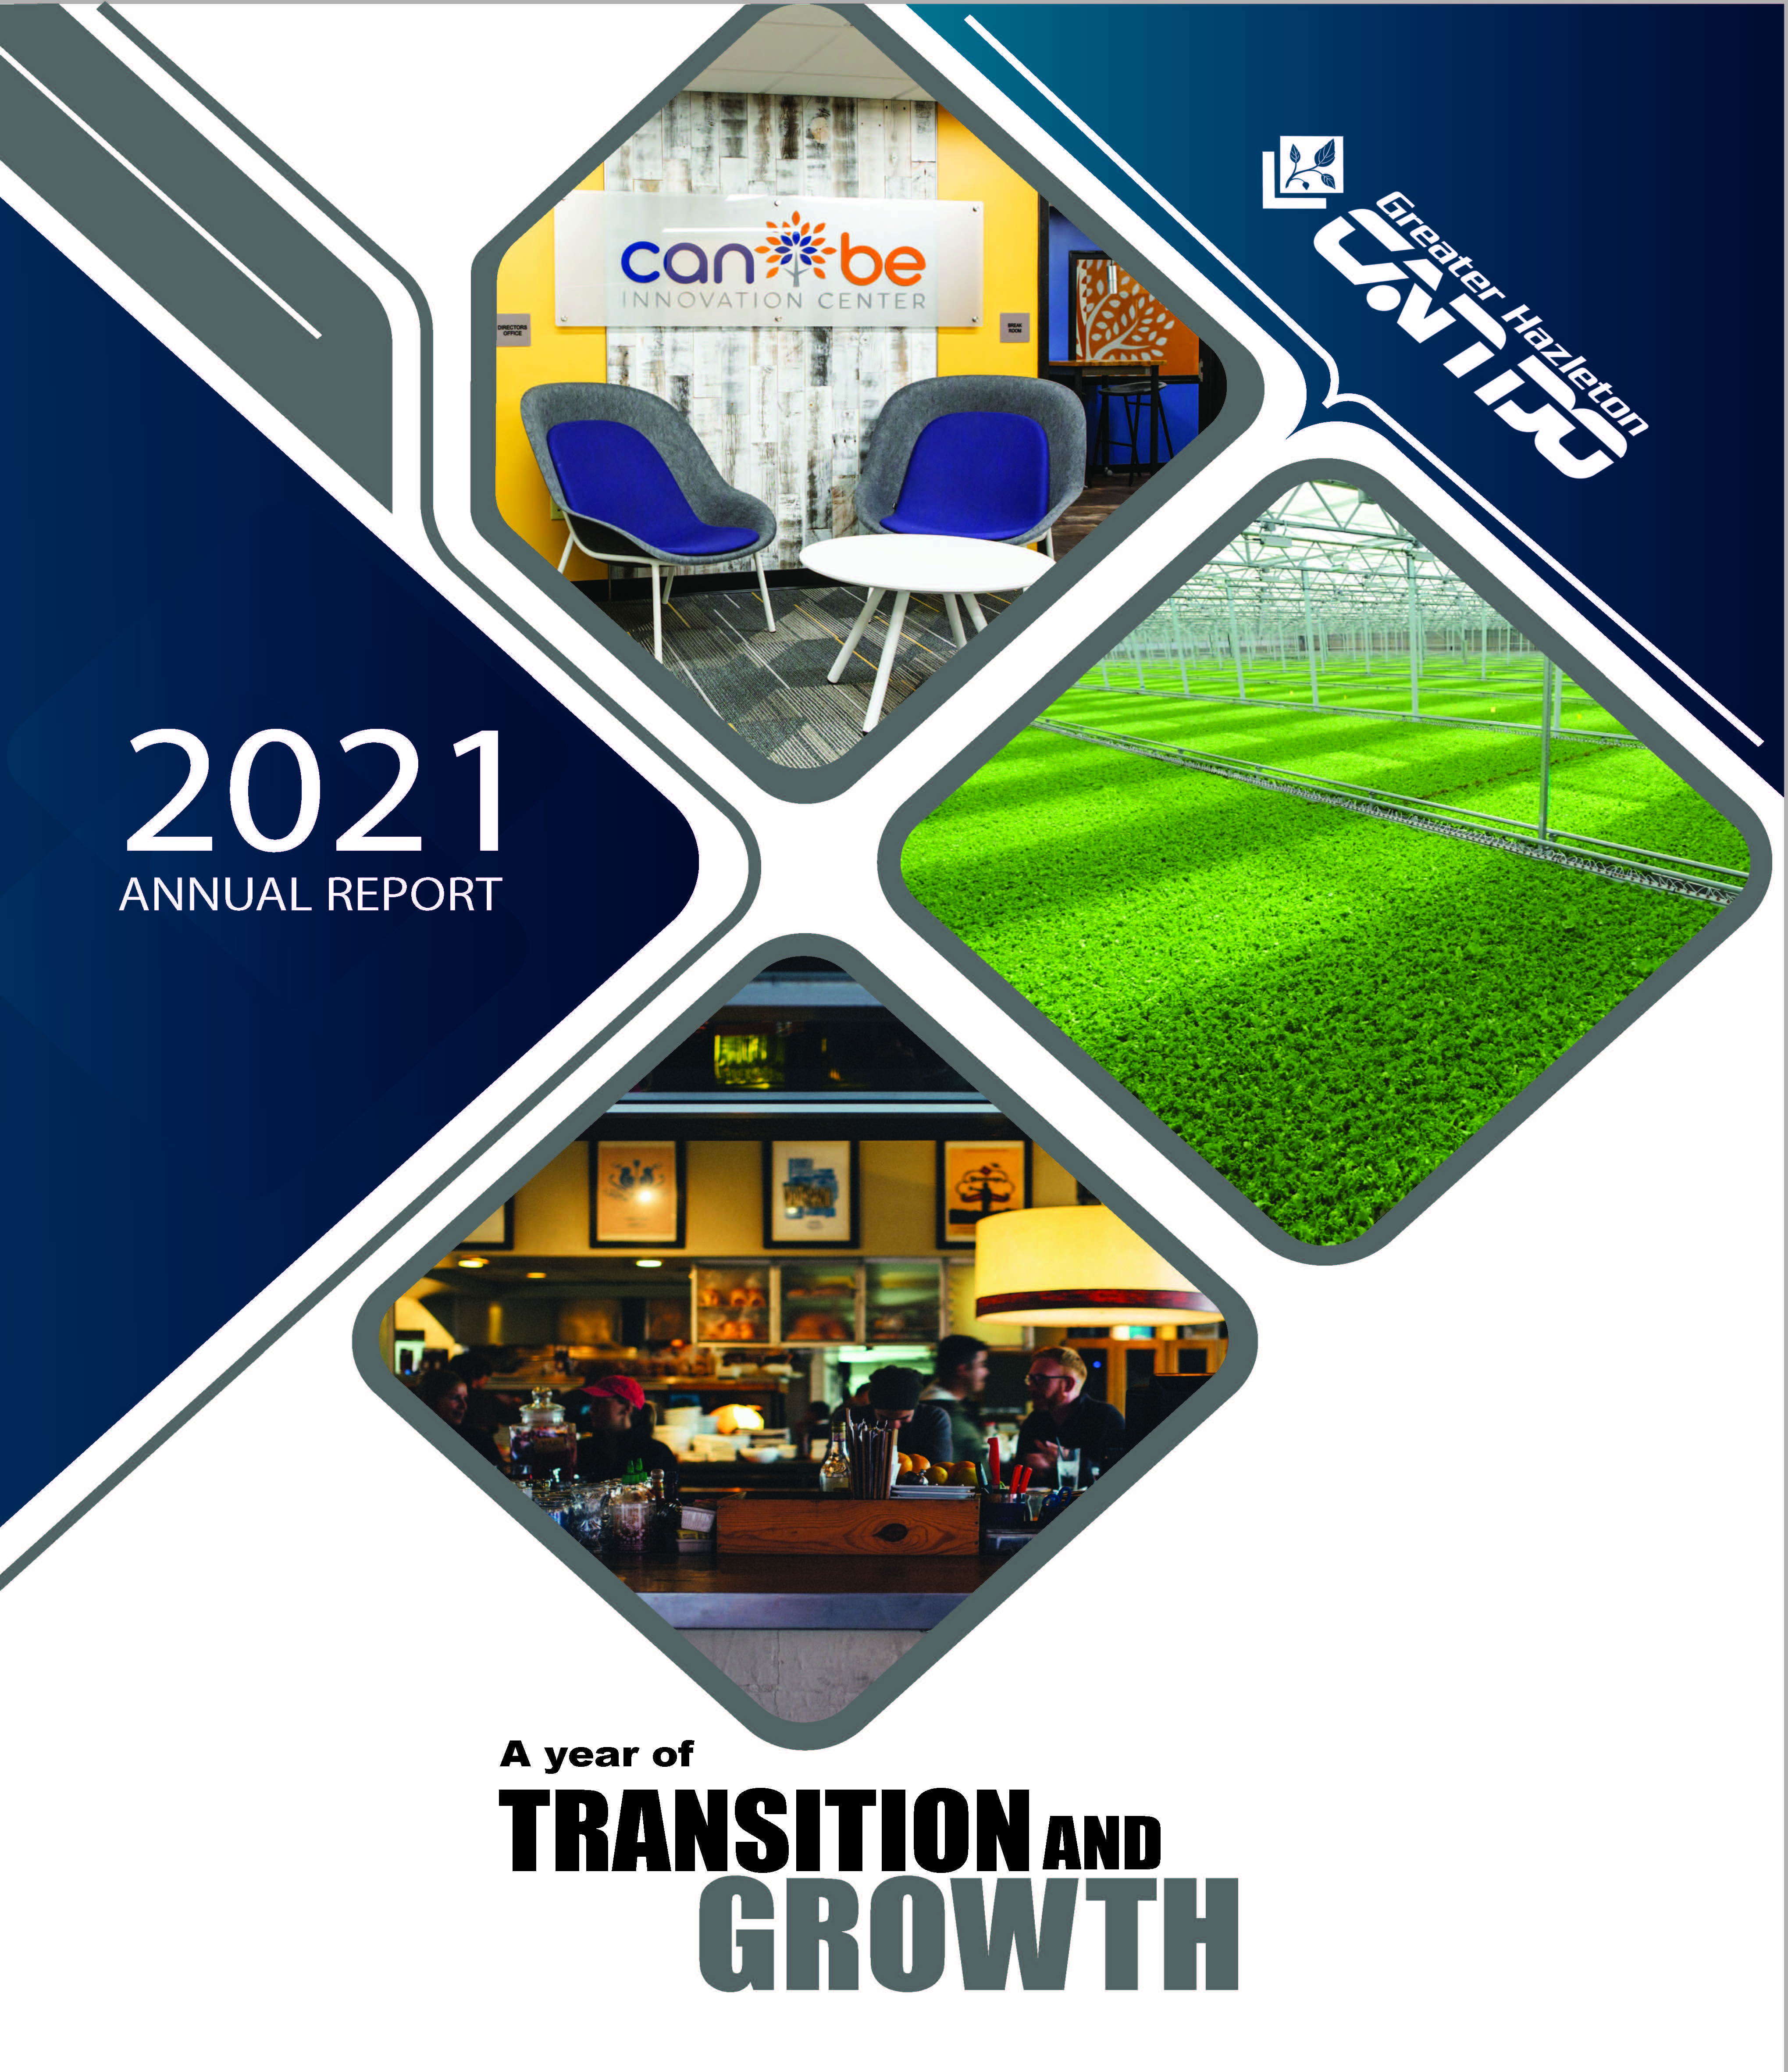 FY 2021 Annual Report